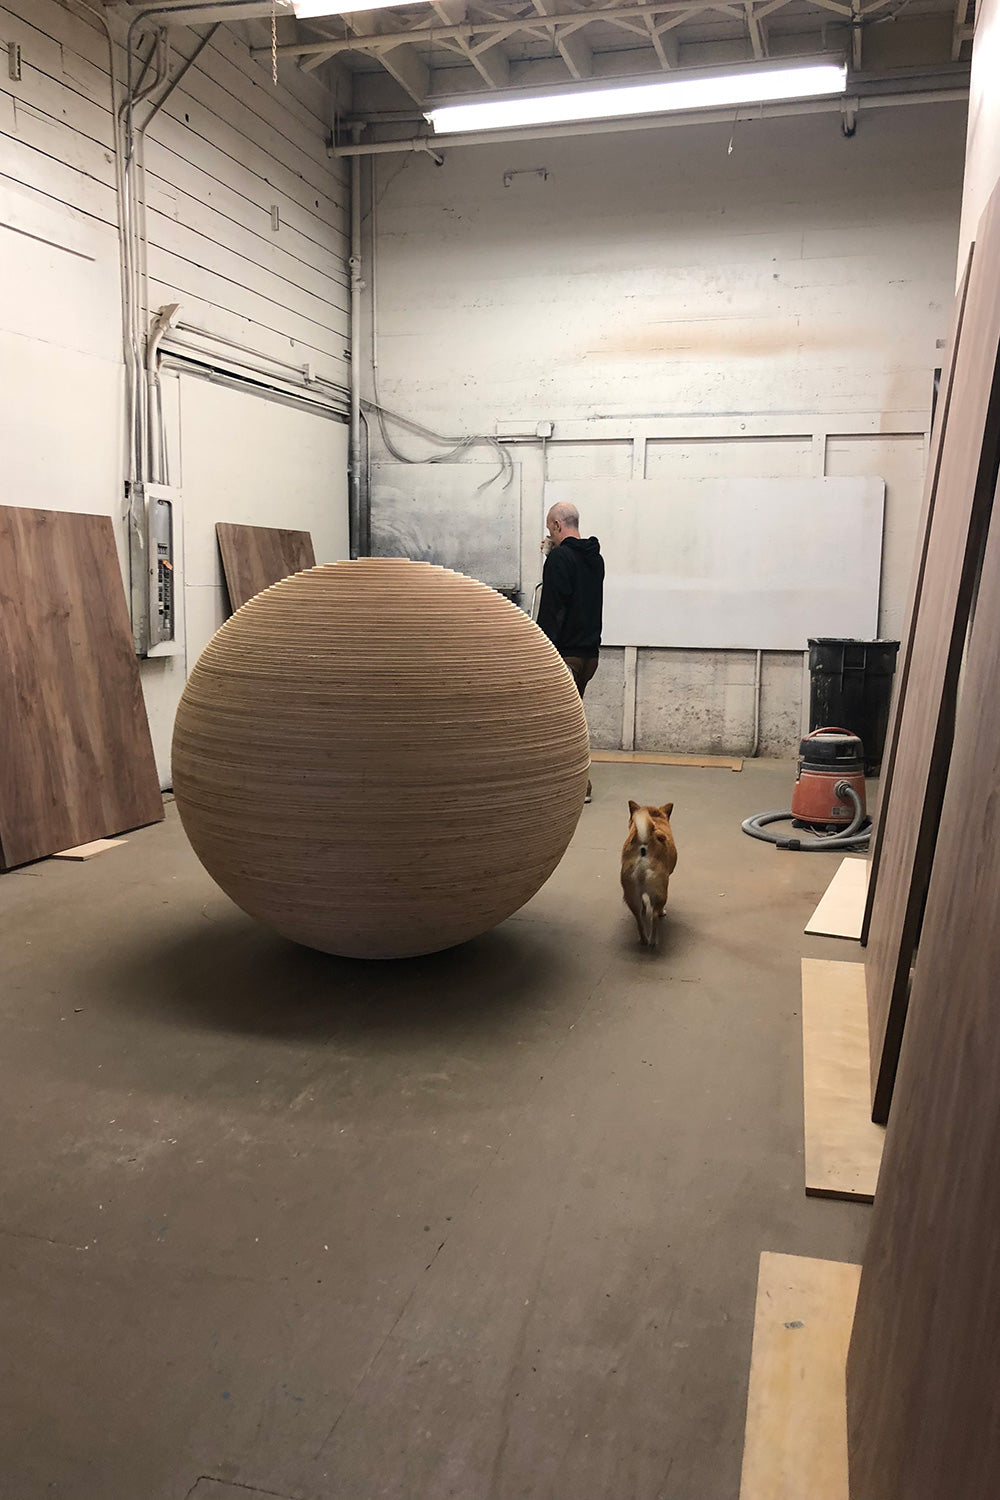 Picture of stacked lamination ball shown in studio next to dog for scale